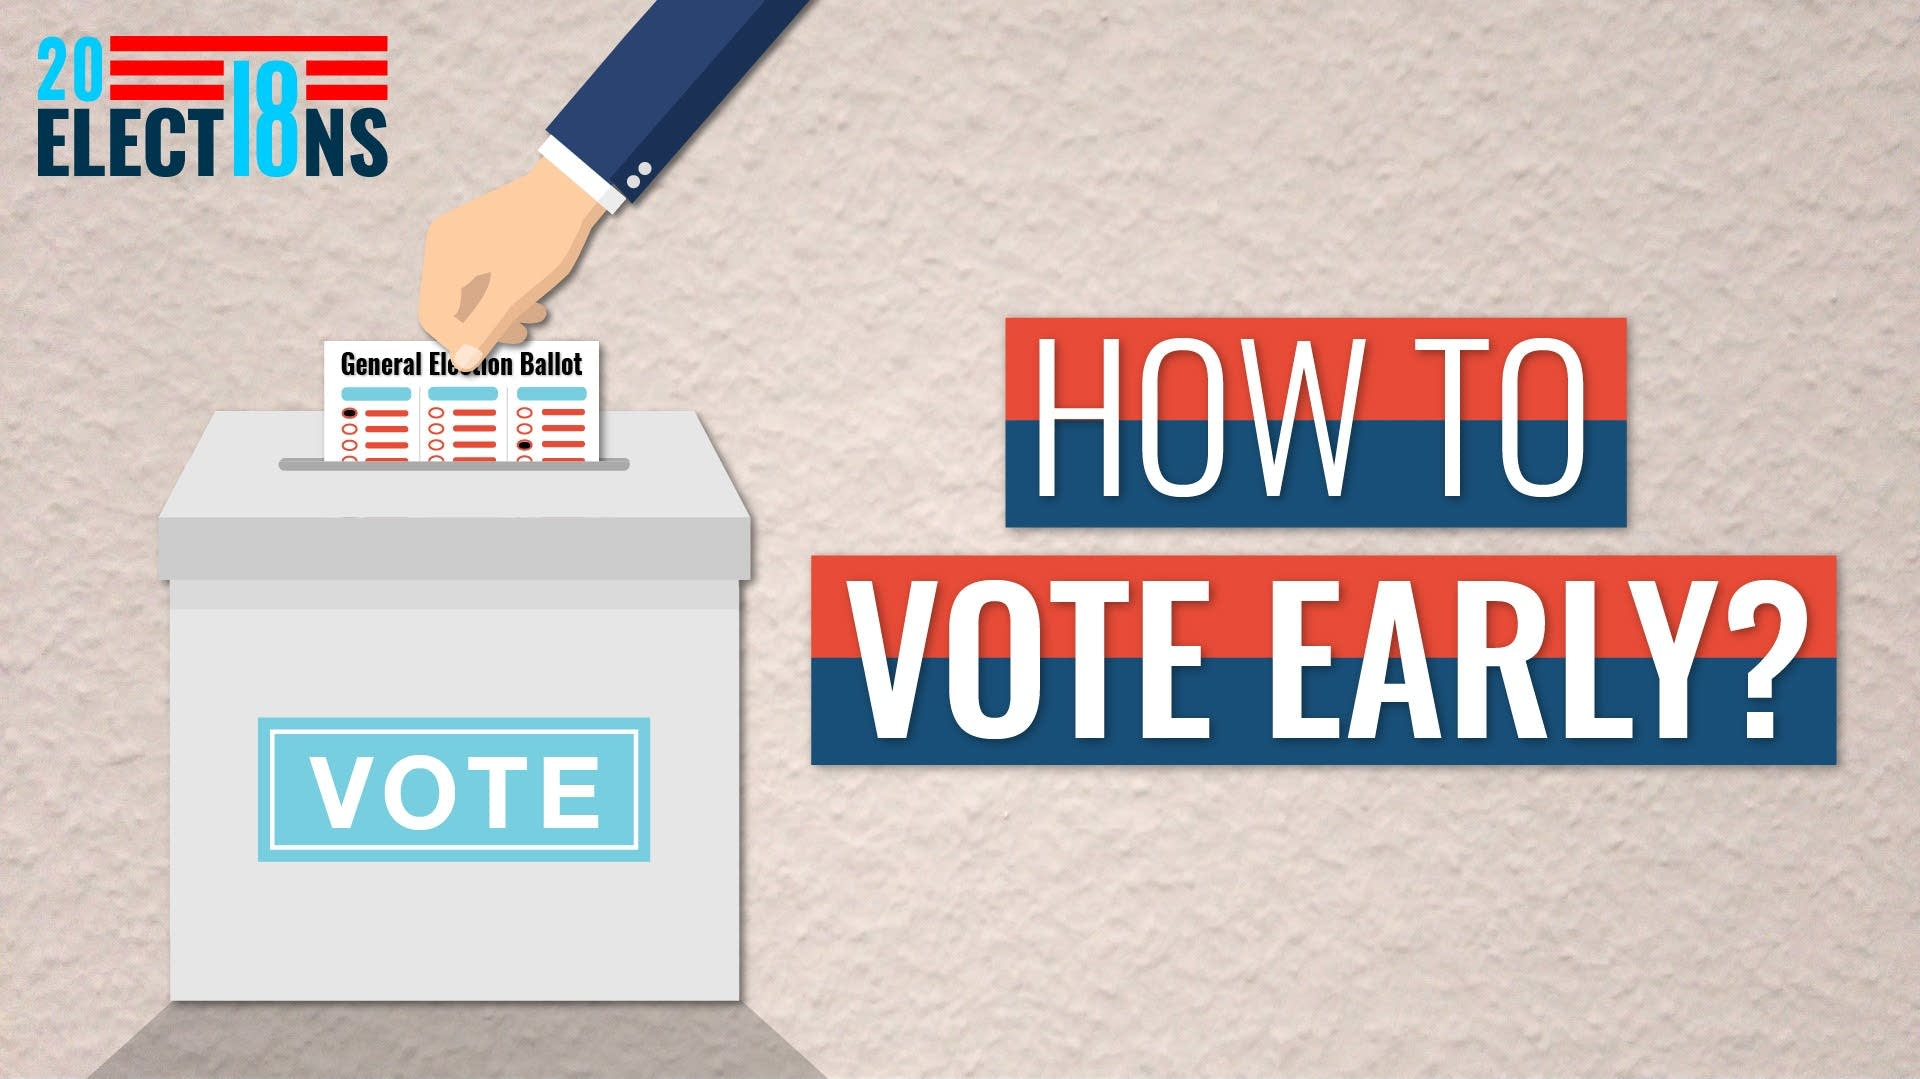 Video: Everything you need to know to vote early in Minnesota's midterm elections